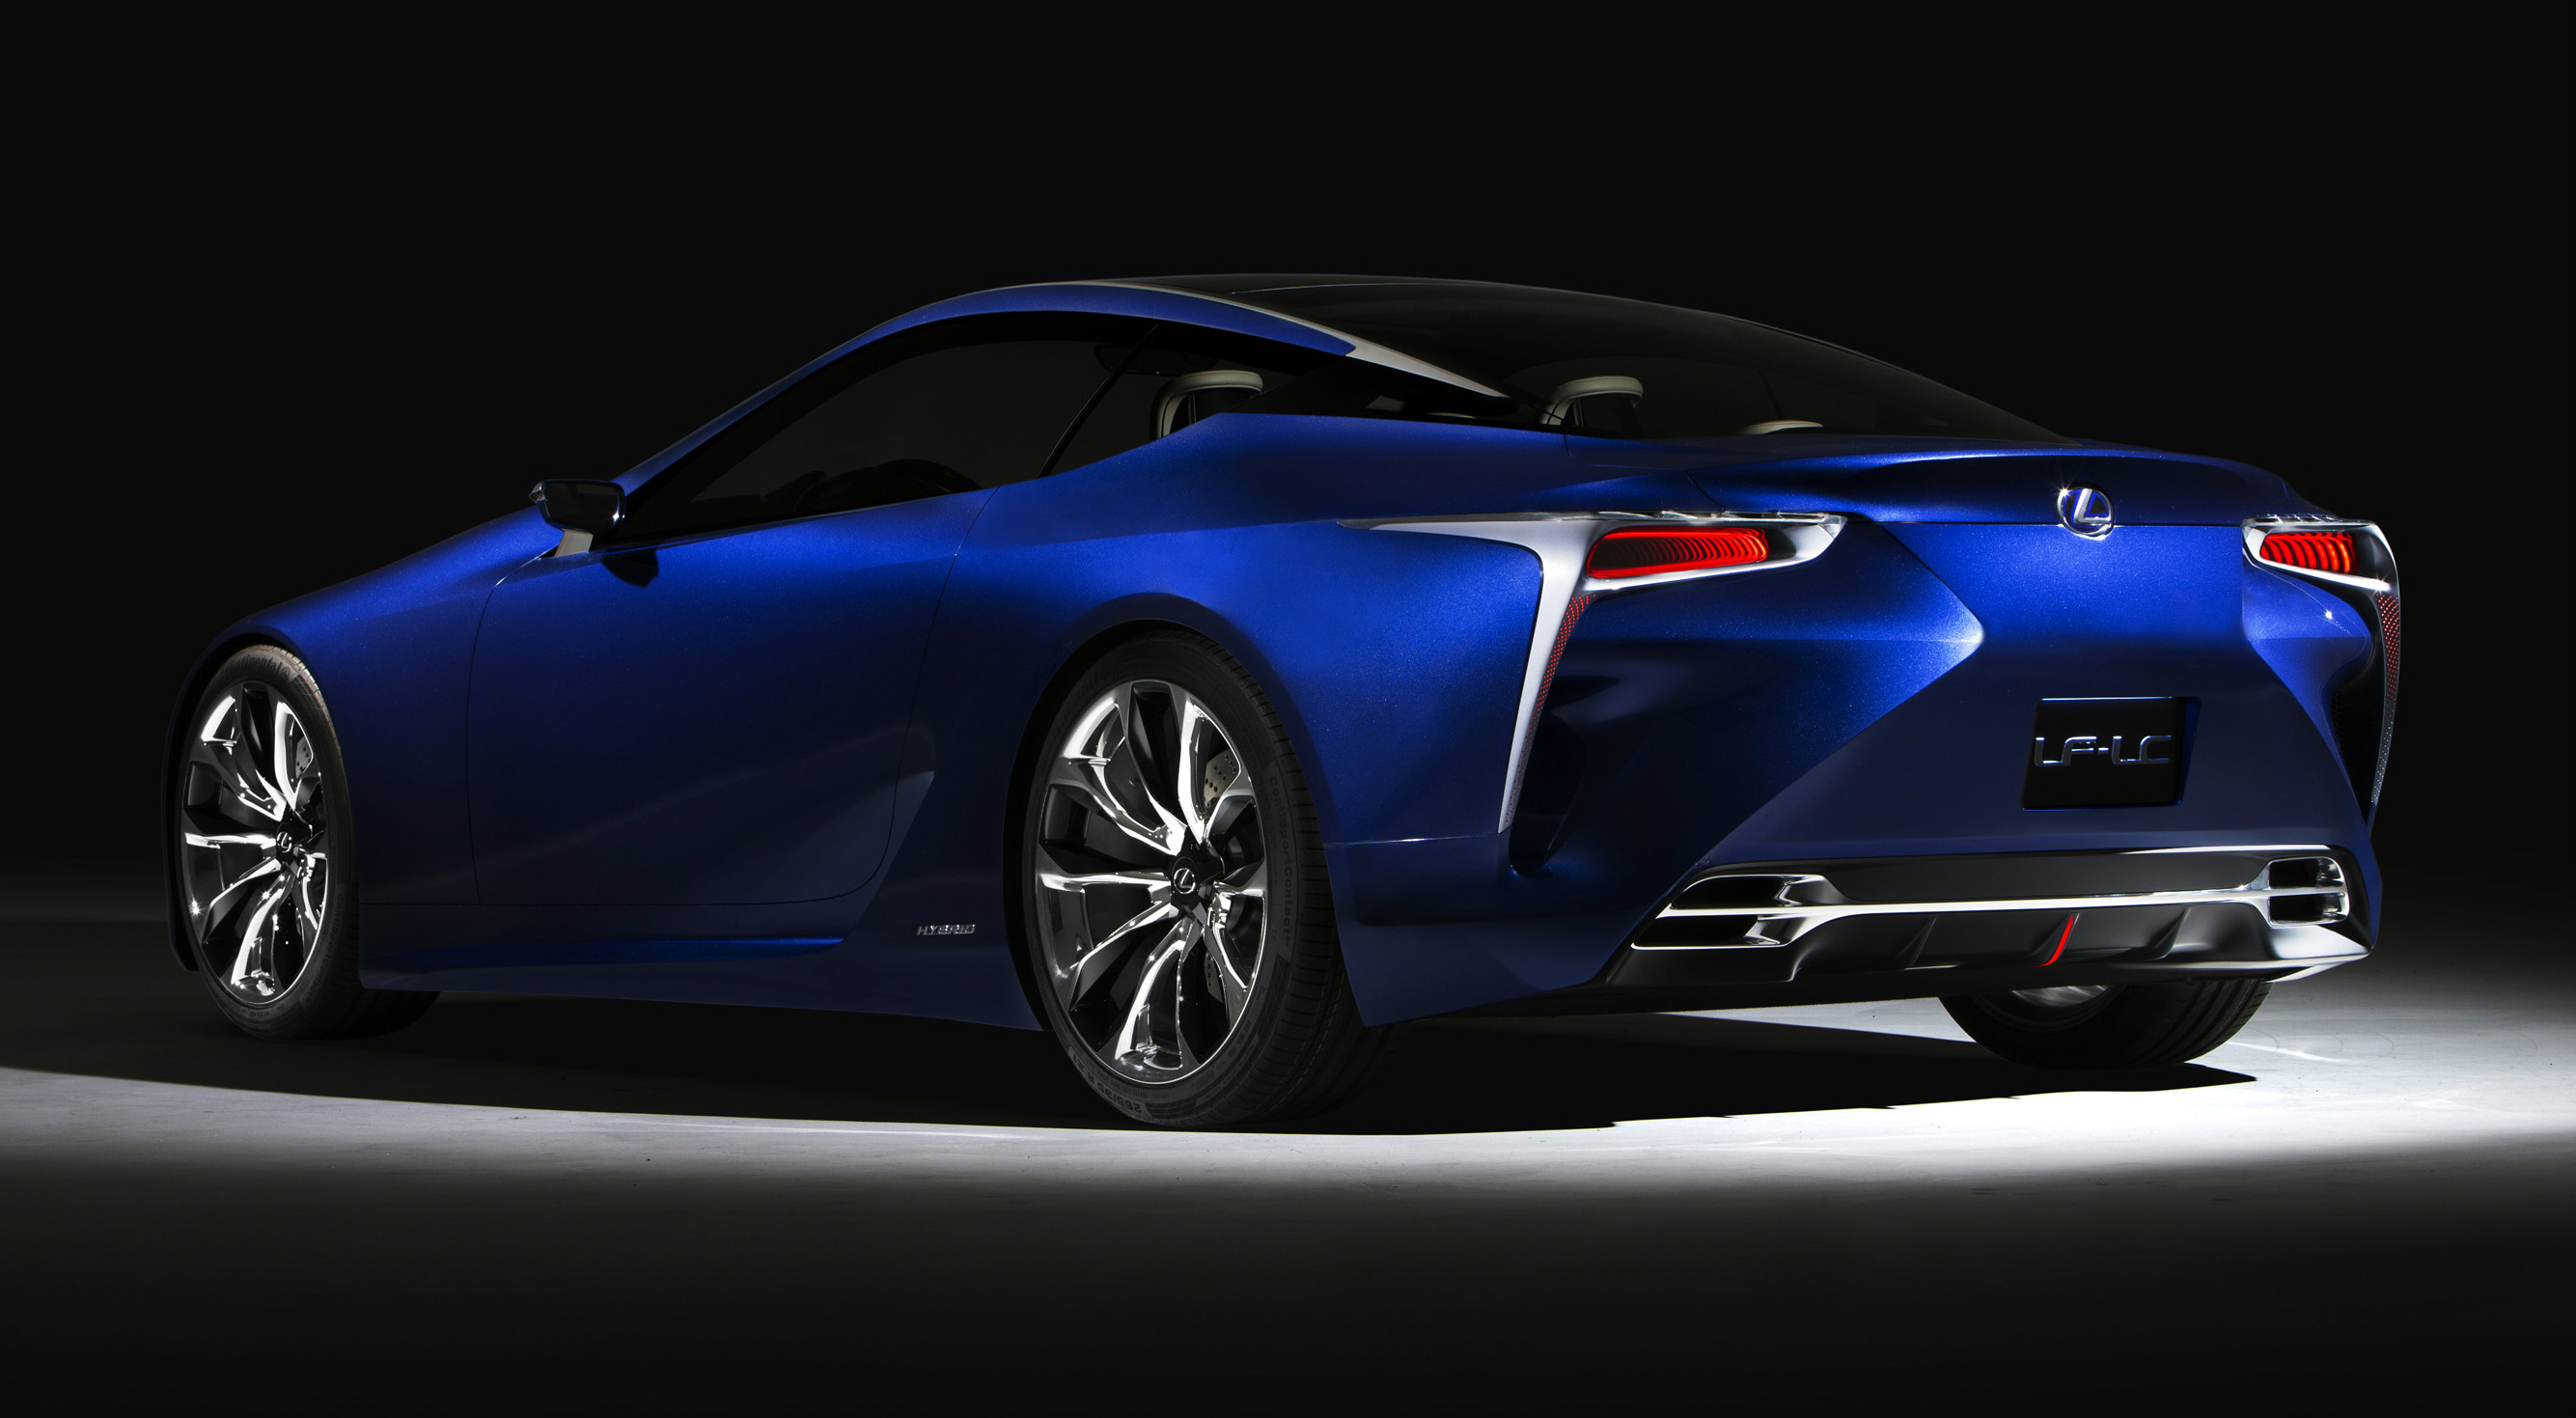 lexus lf lc concept aimsmore information Free Picture Download Image Of